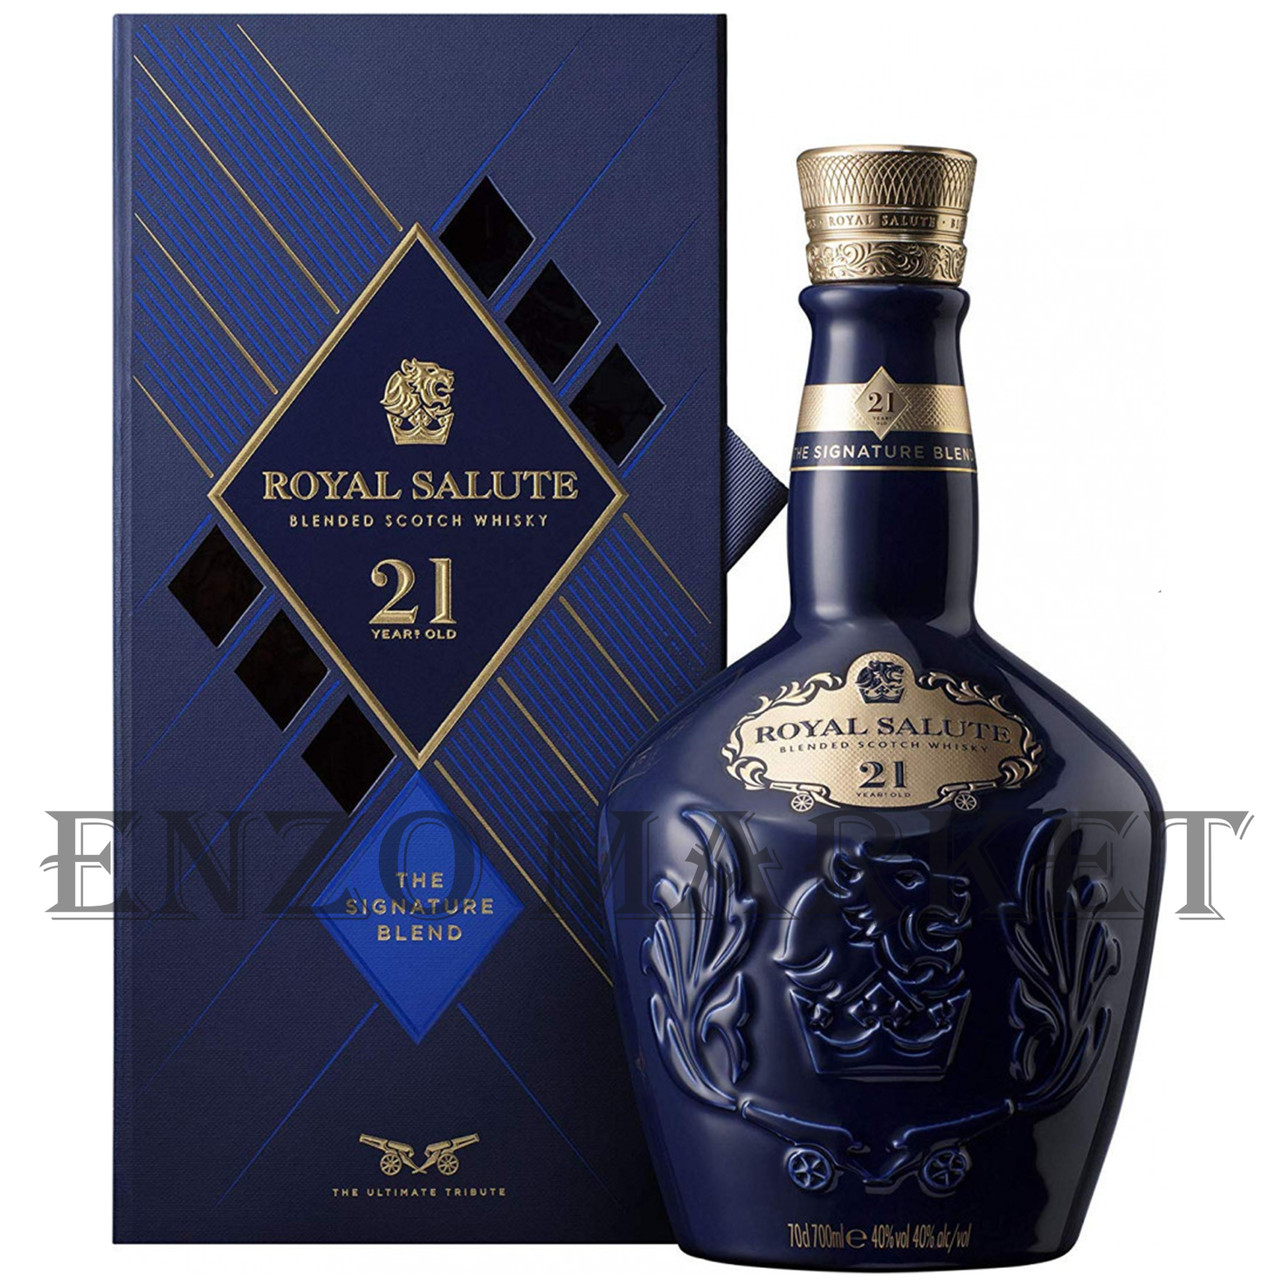 Виски Chivas Regal Royal Salute 21 y.o. (Чивас Ригал Роял Салют 21 год) 40%, 0,75 литра